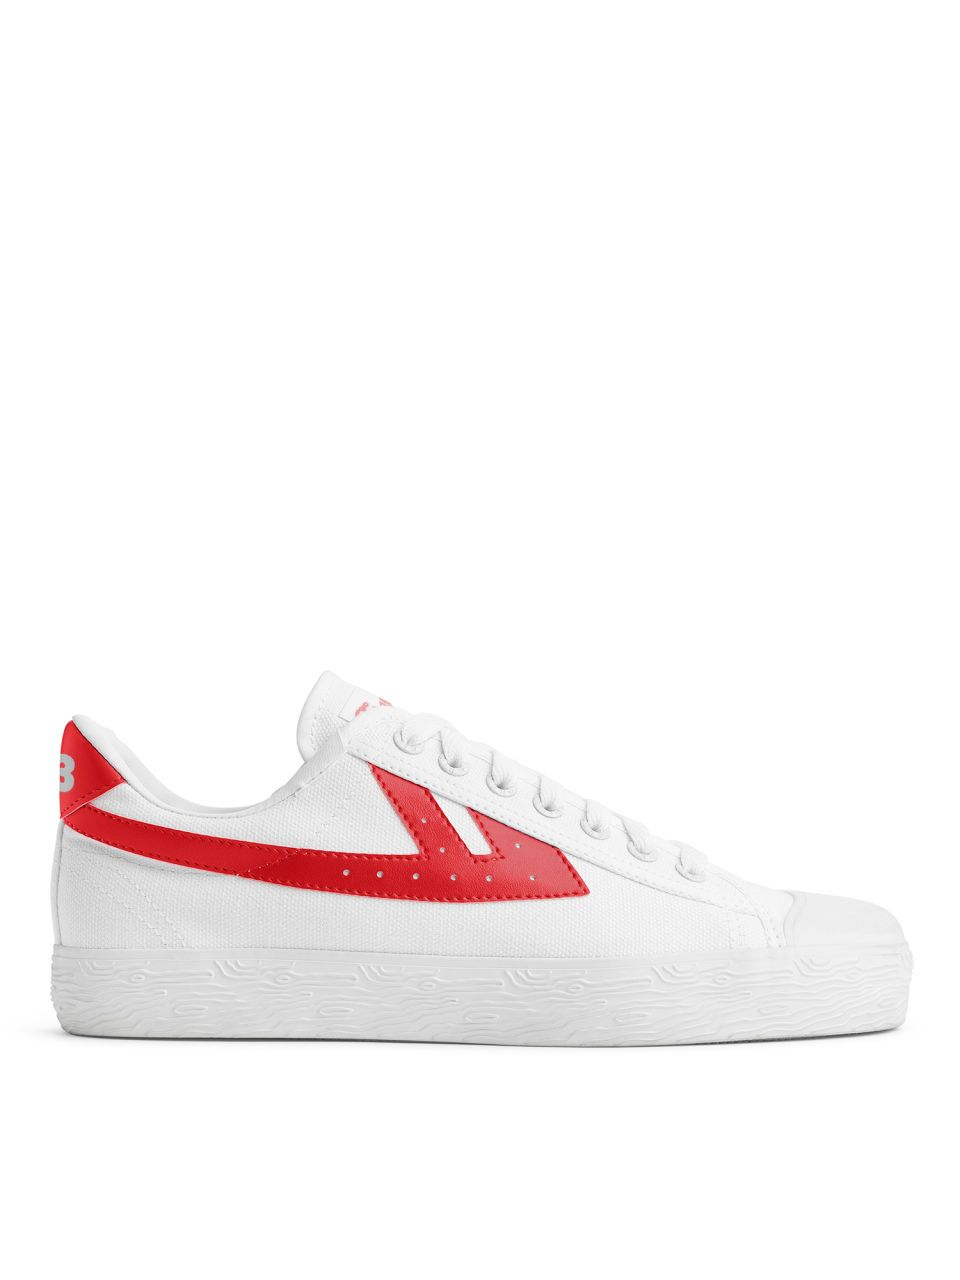 WOS33 Trainers White Red Shoes (With images) | Red shoes